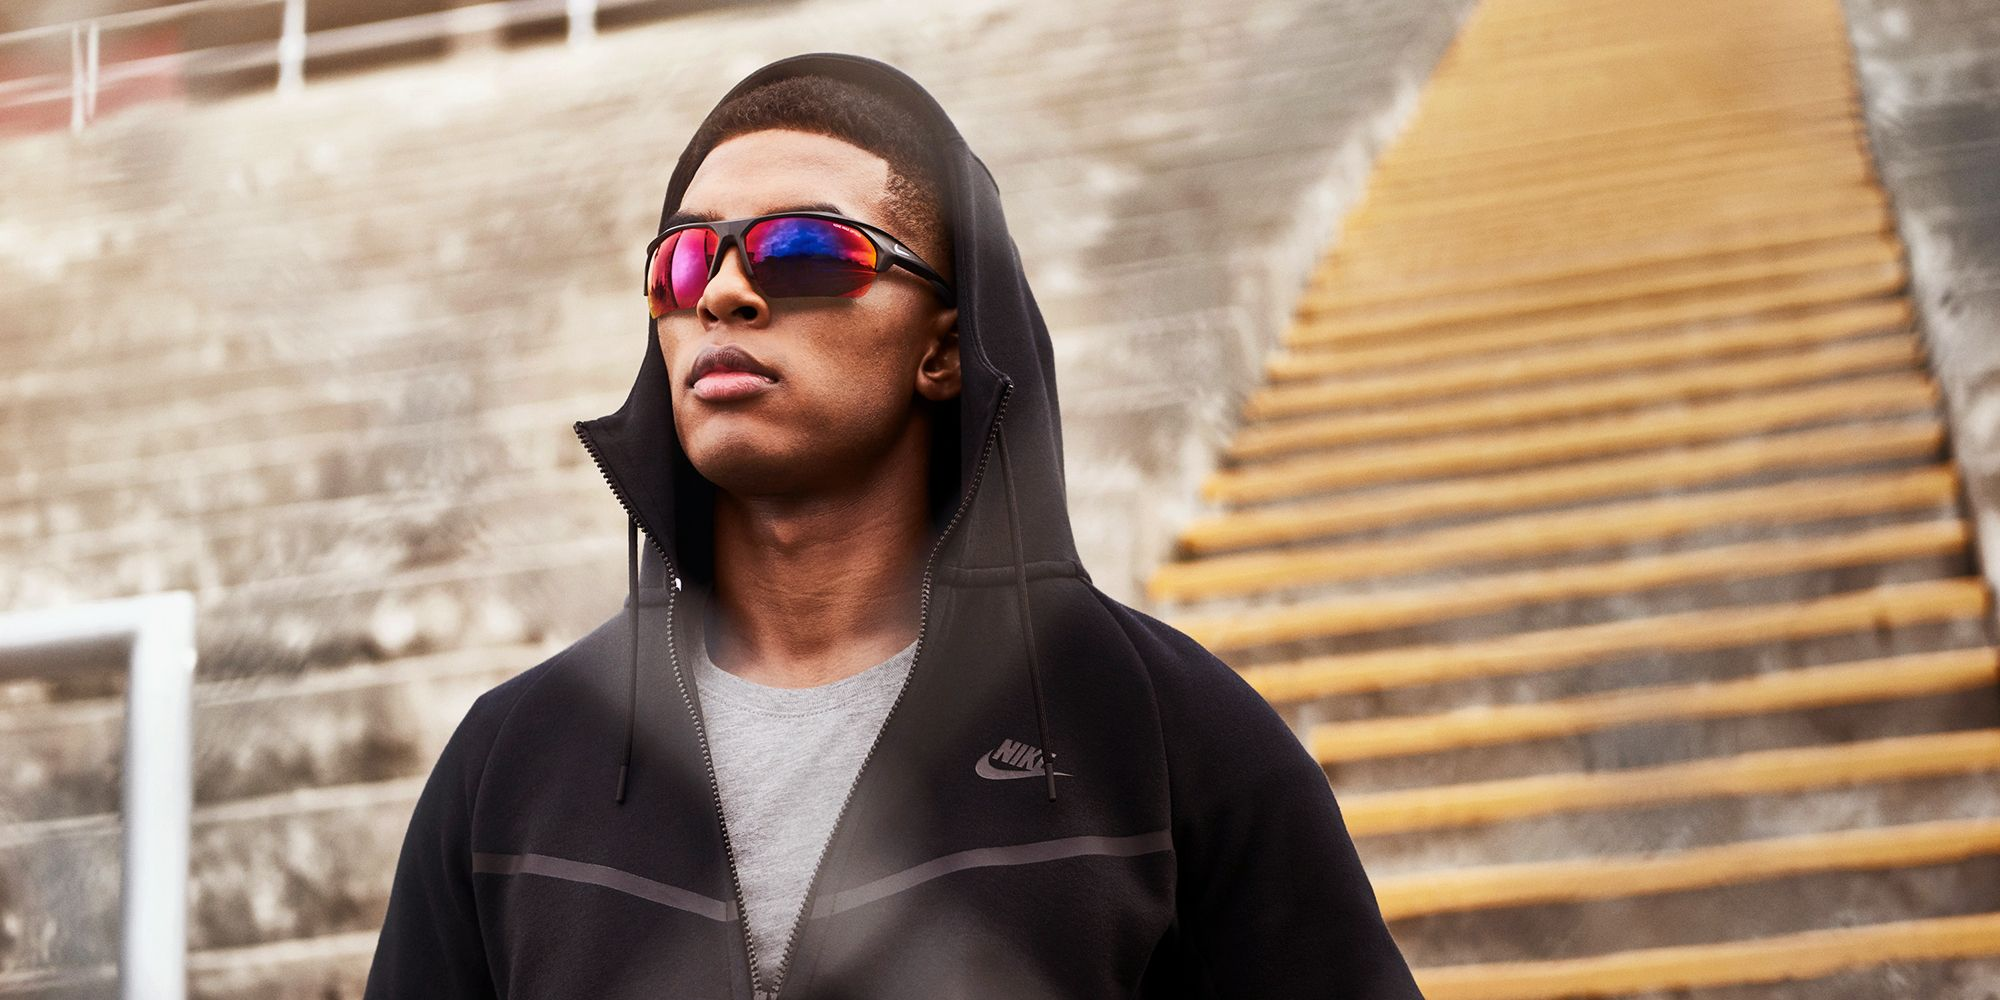 178aeb1e9c9c Your Everyday Sunnies Won't Fly in Sports — Here's Why You Need a Pair of  Sports Sunglasses